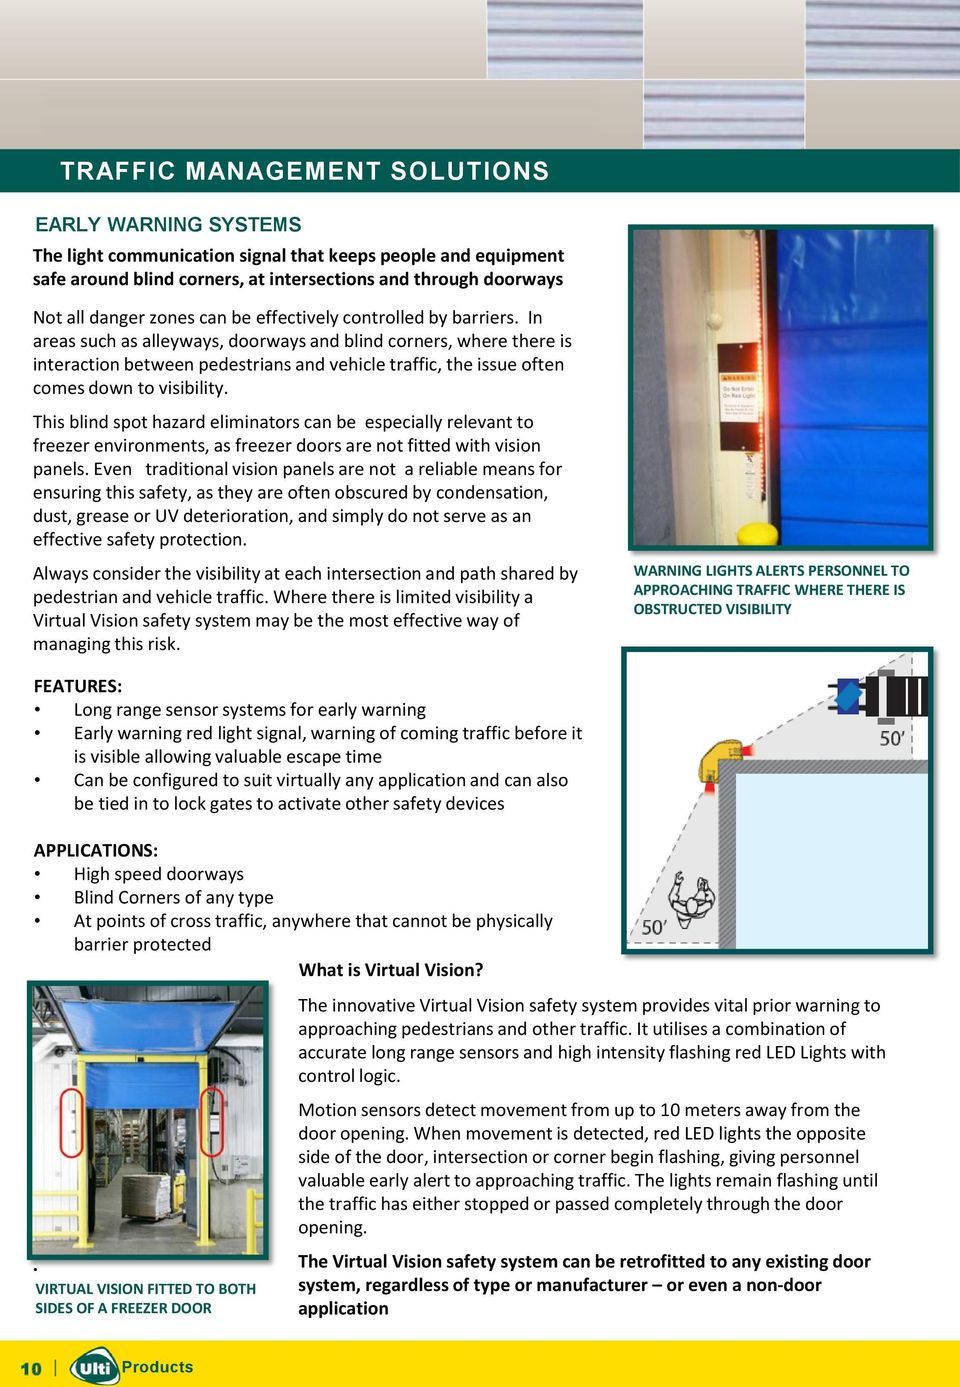 This blind spot hazard eliminators can be especially relevant to freezer environments, as freezer doors are not fitted with vision panels.